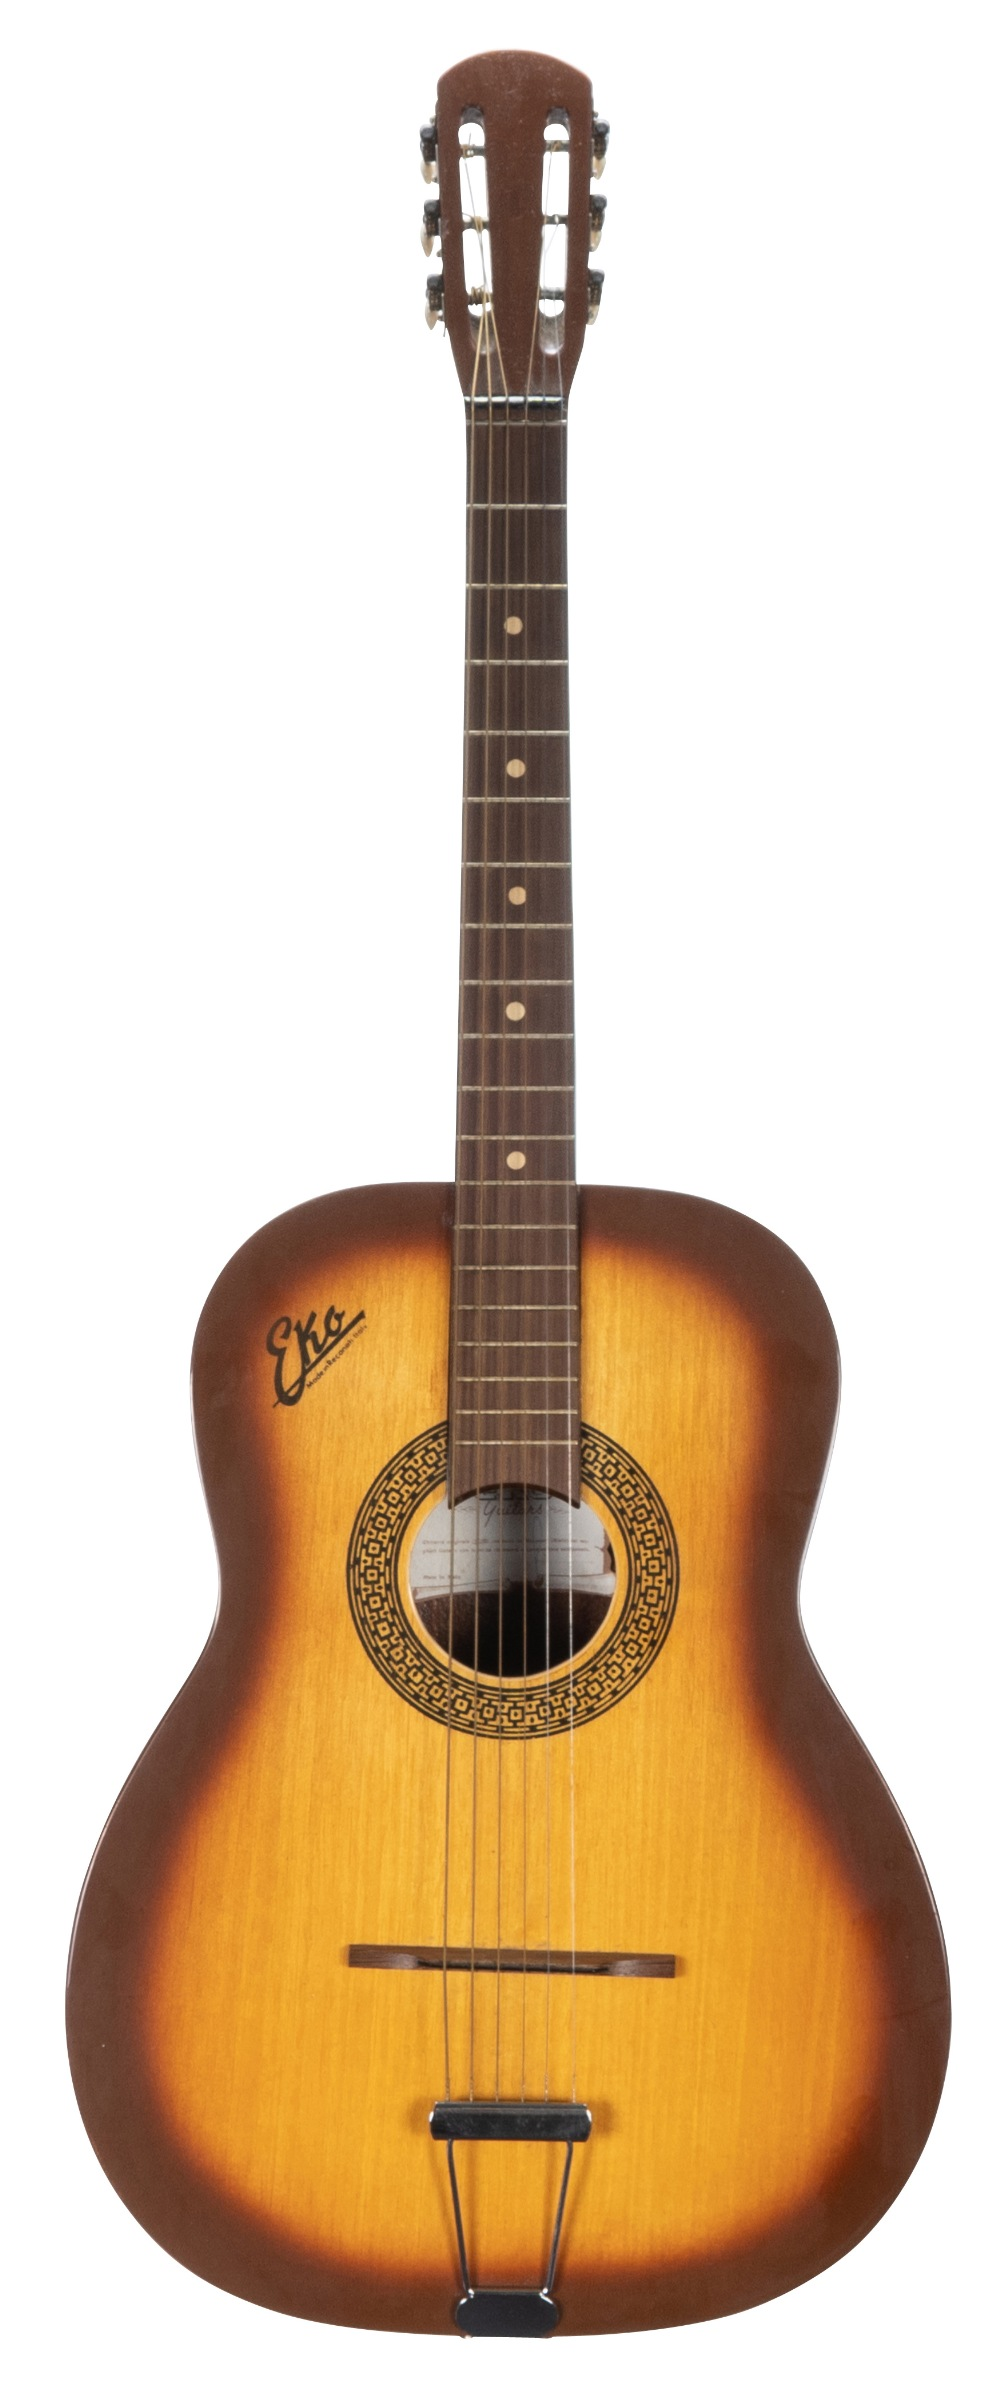 Lot 37 - Eko Fiesta 3/4 acoustic guitar, made in Italy; Finish: sunburst, some lacquer cracks, blemishes